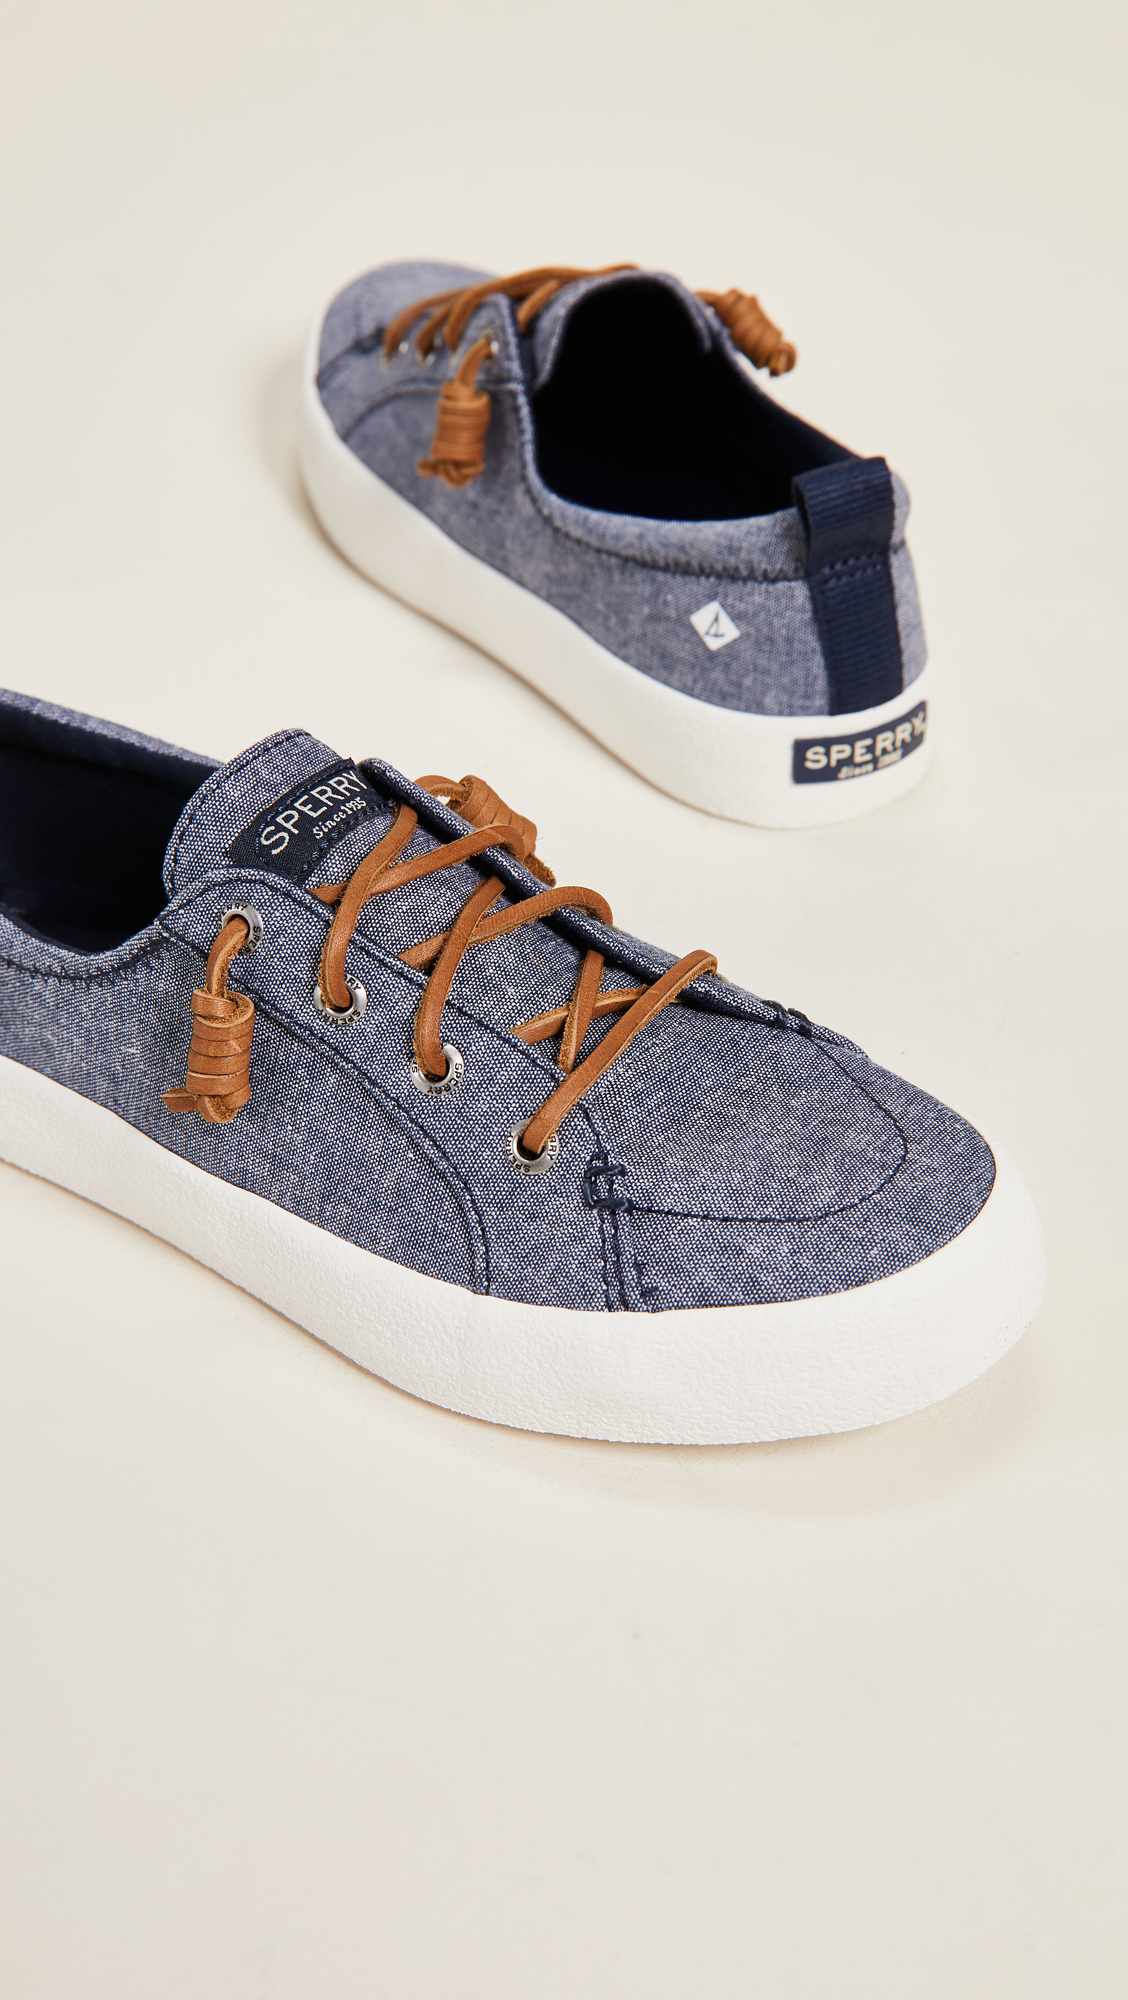 Chambray Sperry SneakersShopbop Crest Vibe Crepe g7yvYmf6Ib